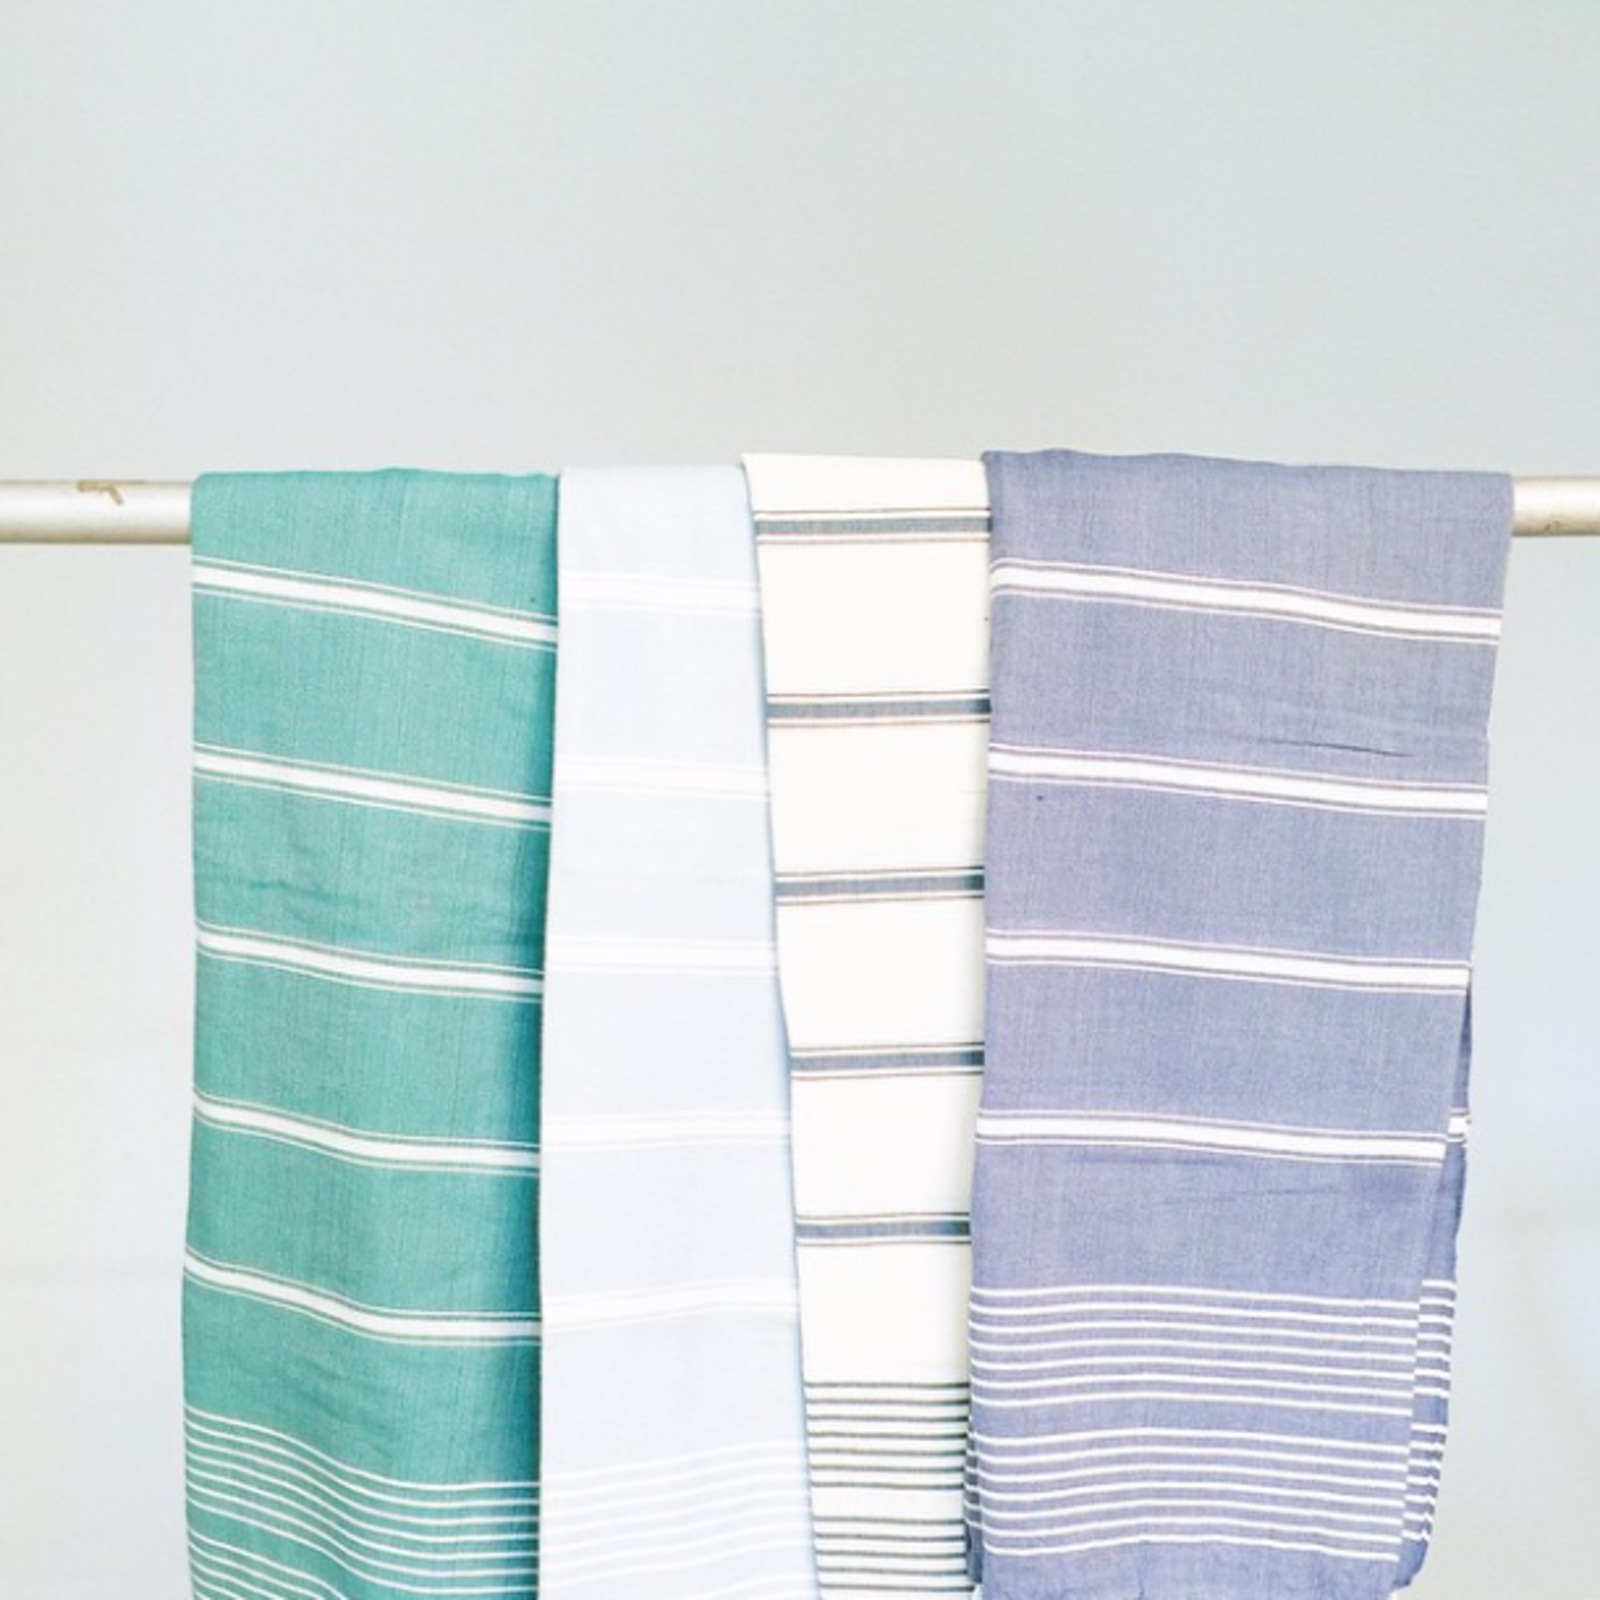 Louisiana. Based in New Orleans, Loomed NOLA produces hand-woven, organic Turkish textiles, from tea towels to blankets.  Reasons to Love Design Made in America by Dwell